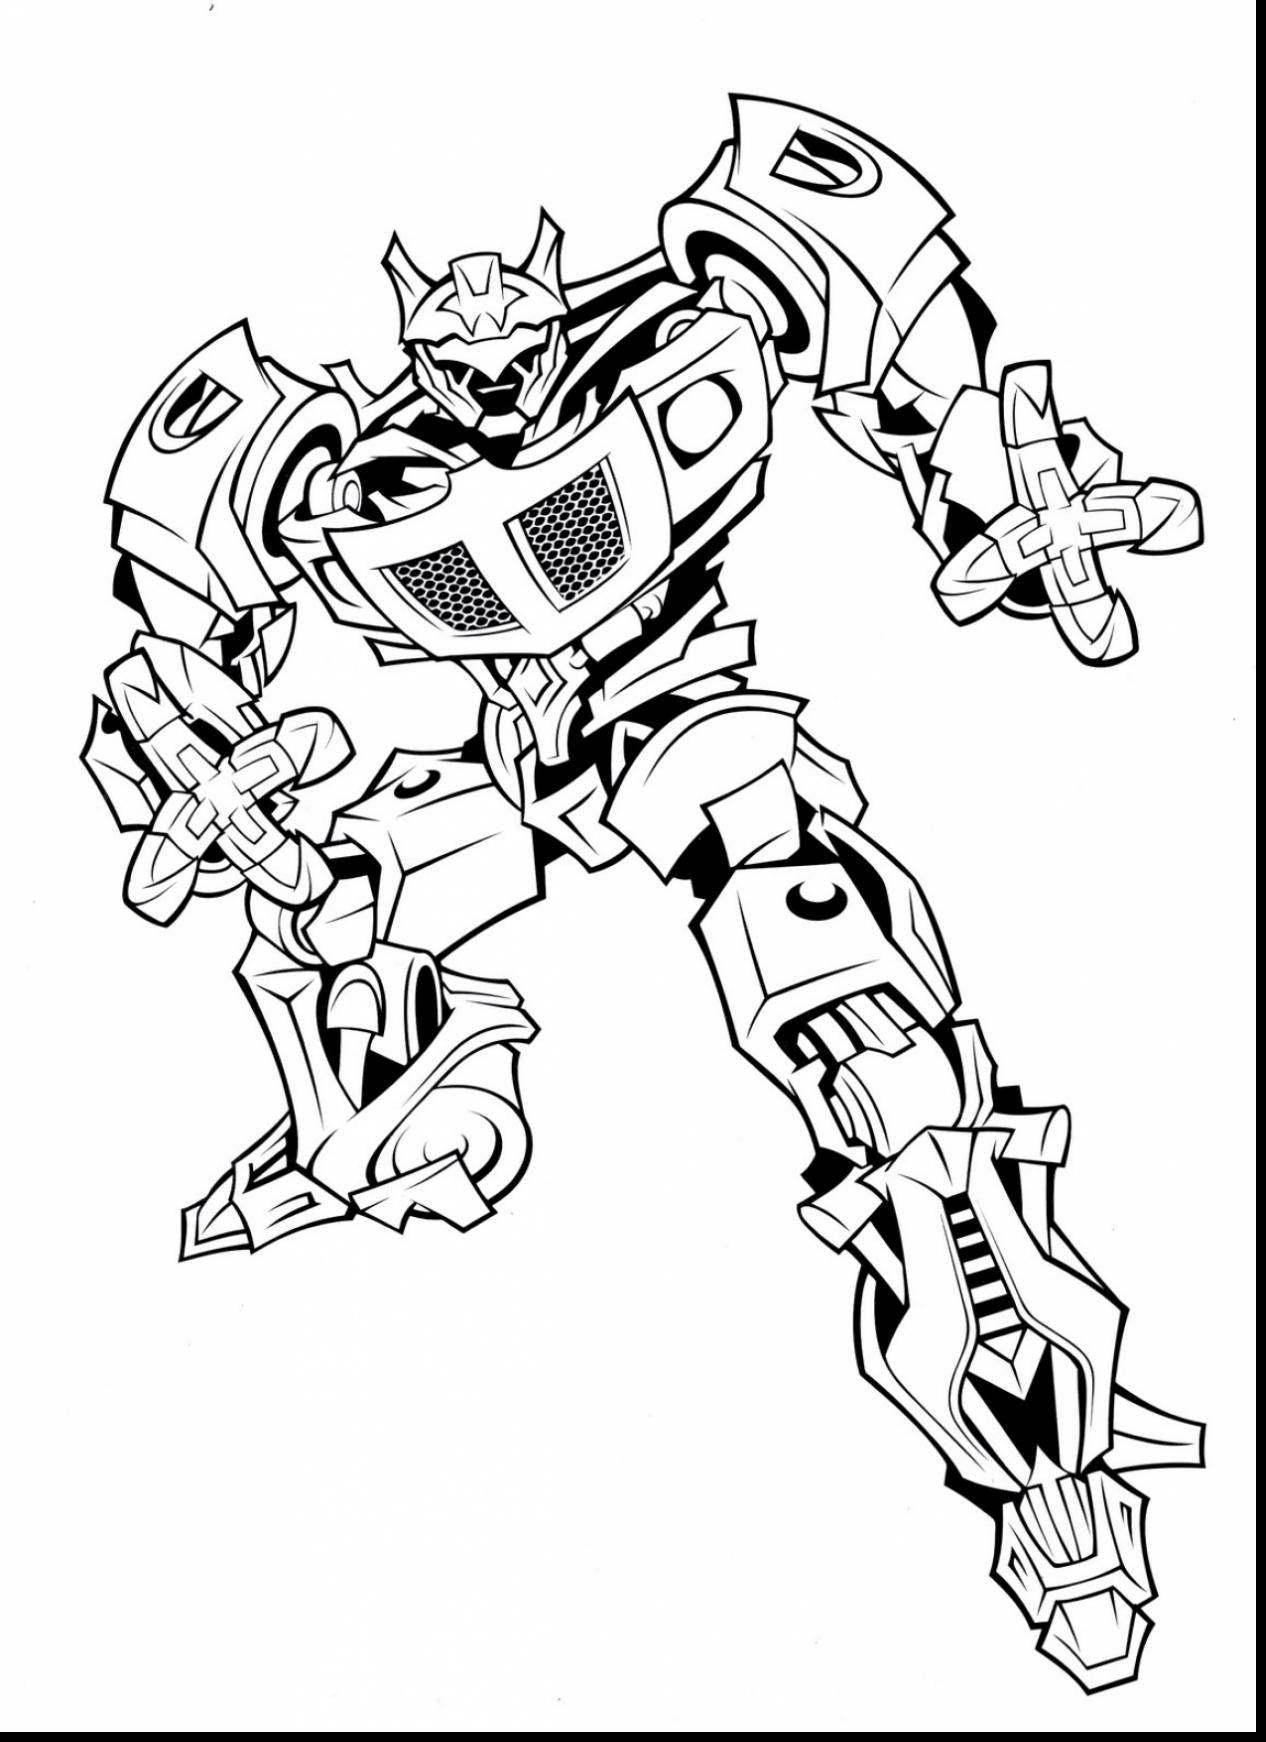 Transformers Coloring Pages Free Printable At Getdrawings